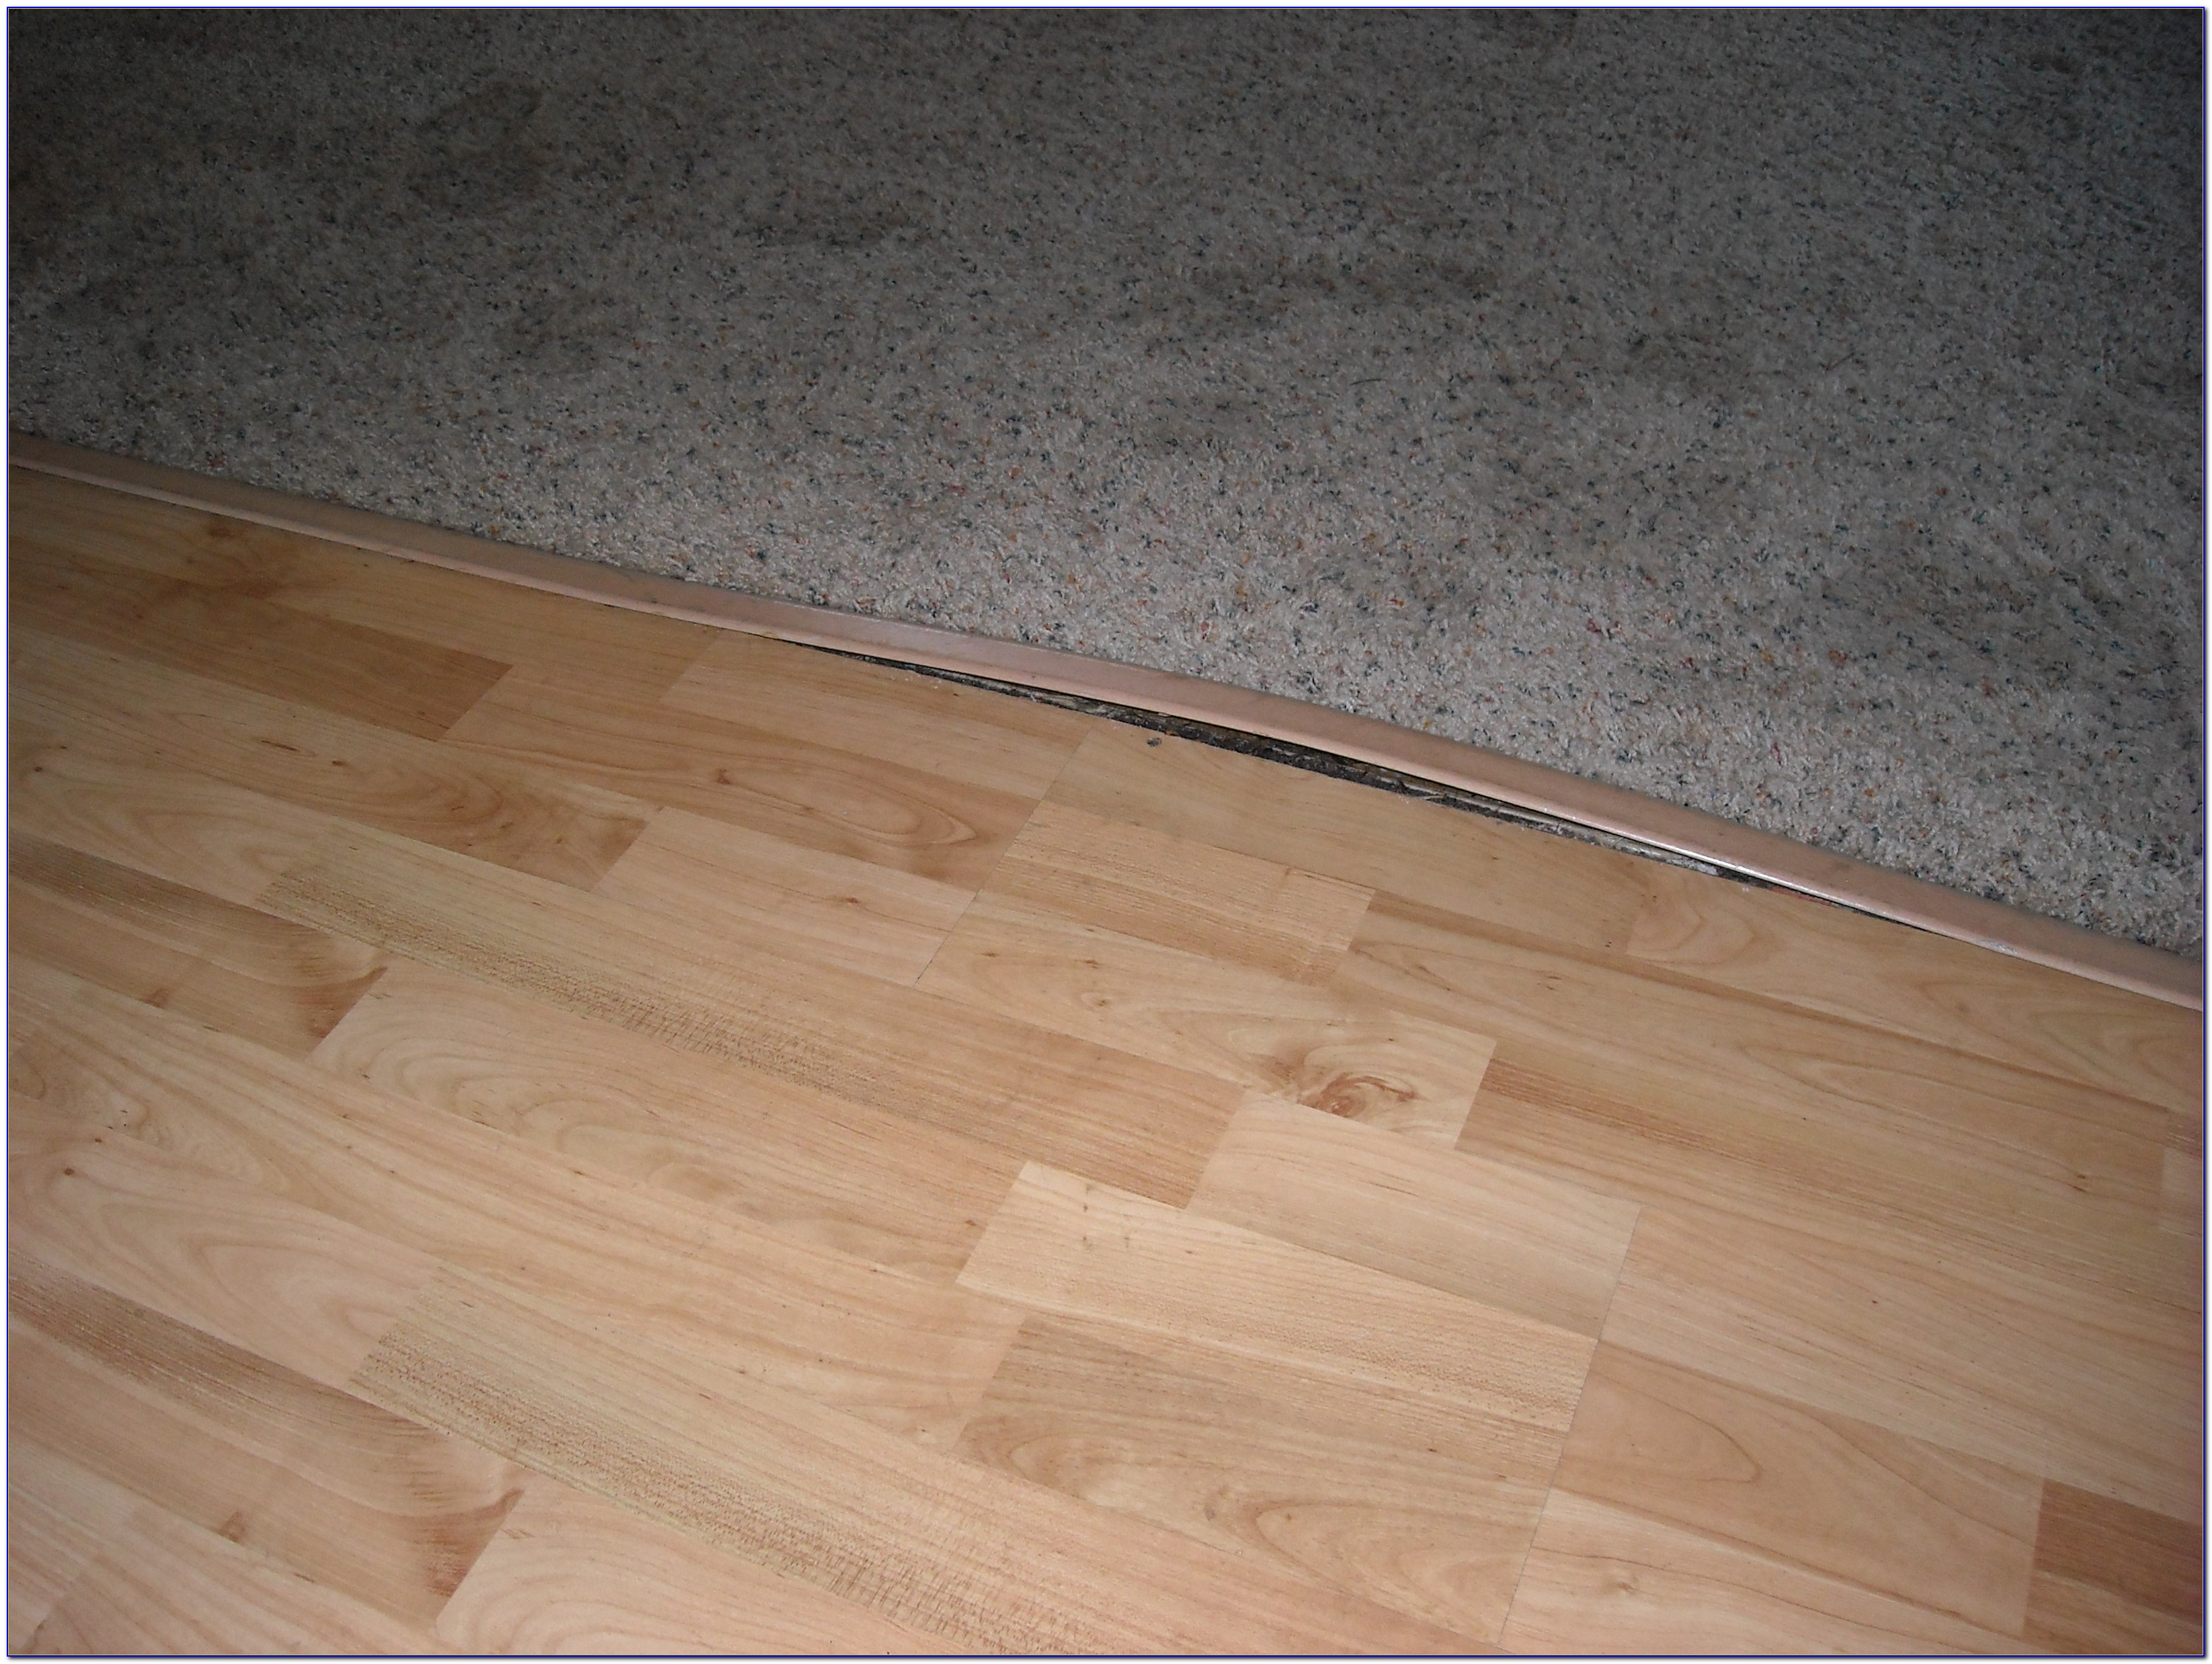 Laminate Flooring Has Water Damage